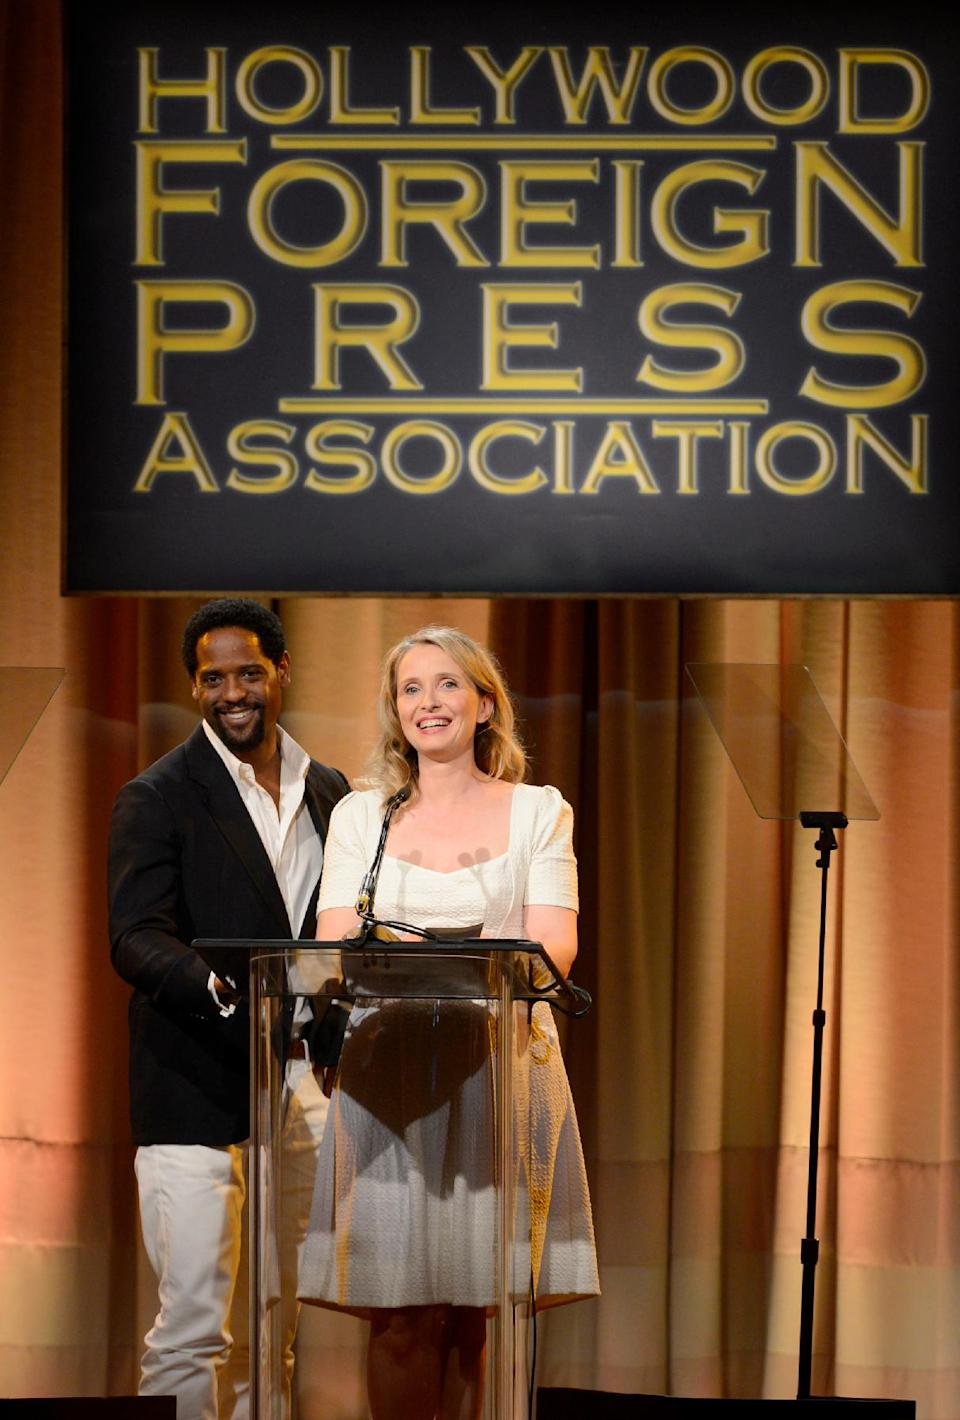 Blair Underwood, left, and Julie Delpy speak on stage at the Hollywood Foreign Press Association Luncheon at the Beverly Hilton Hotel on Tuesday, Aug. 13, 2013, in Beverly Hills, Calif. (Photo by Chris Pizzello/Invision/AP)